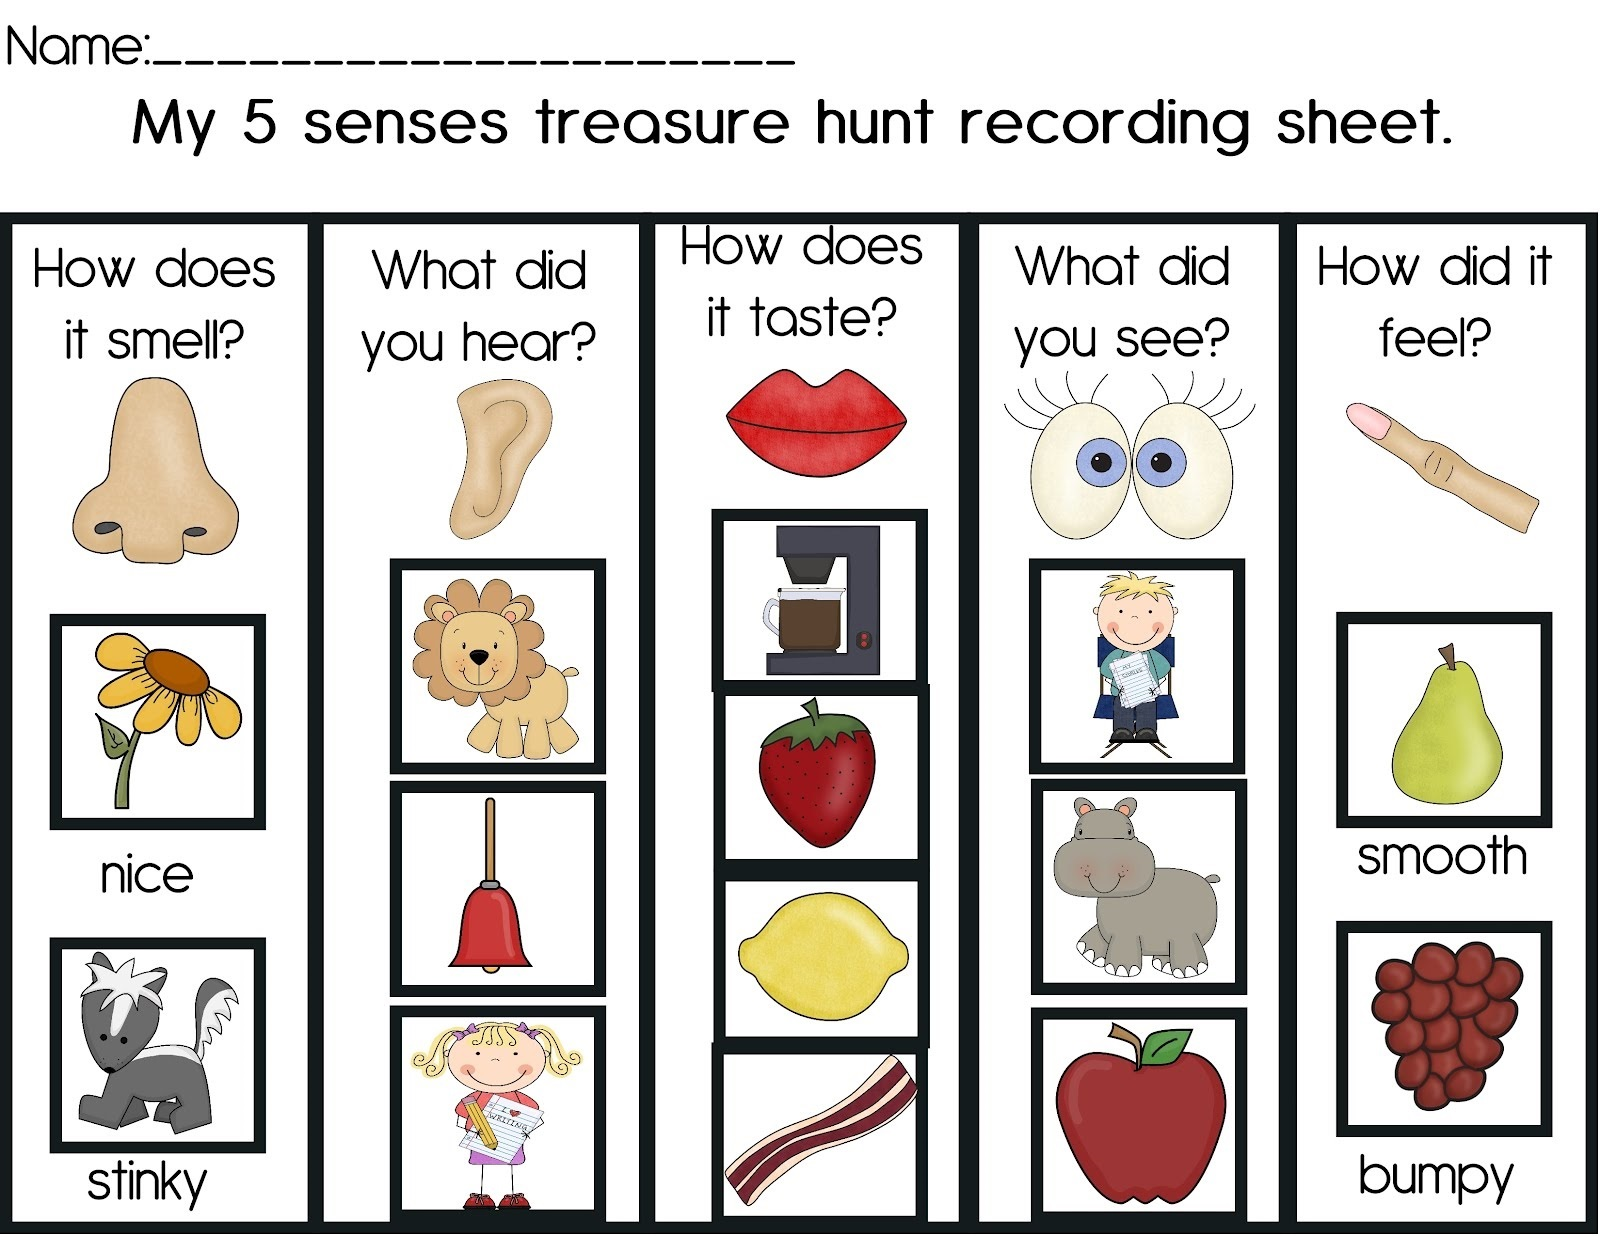 activities for 5 senses for kids